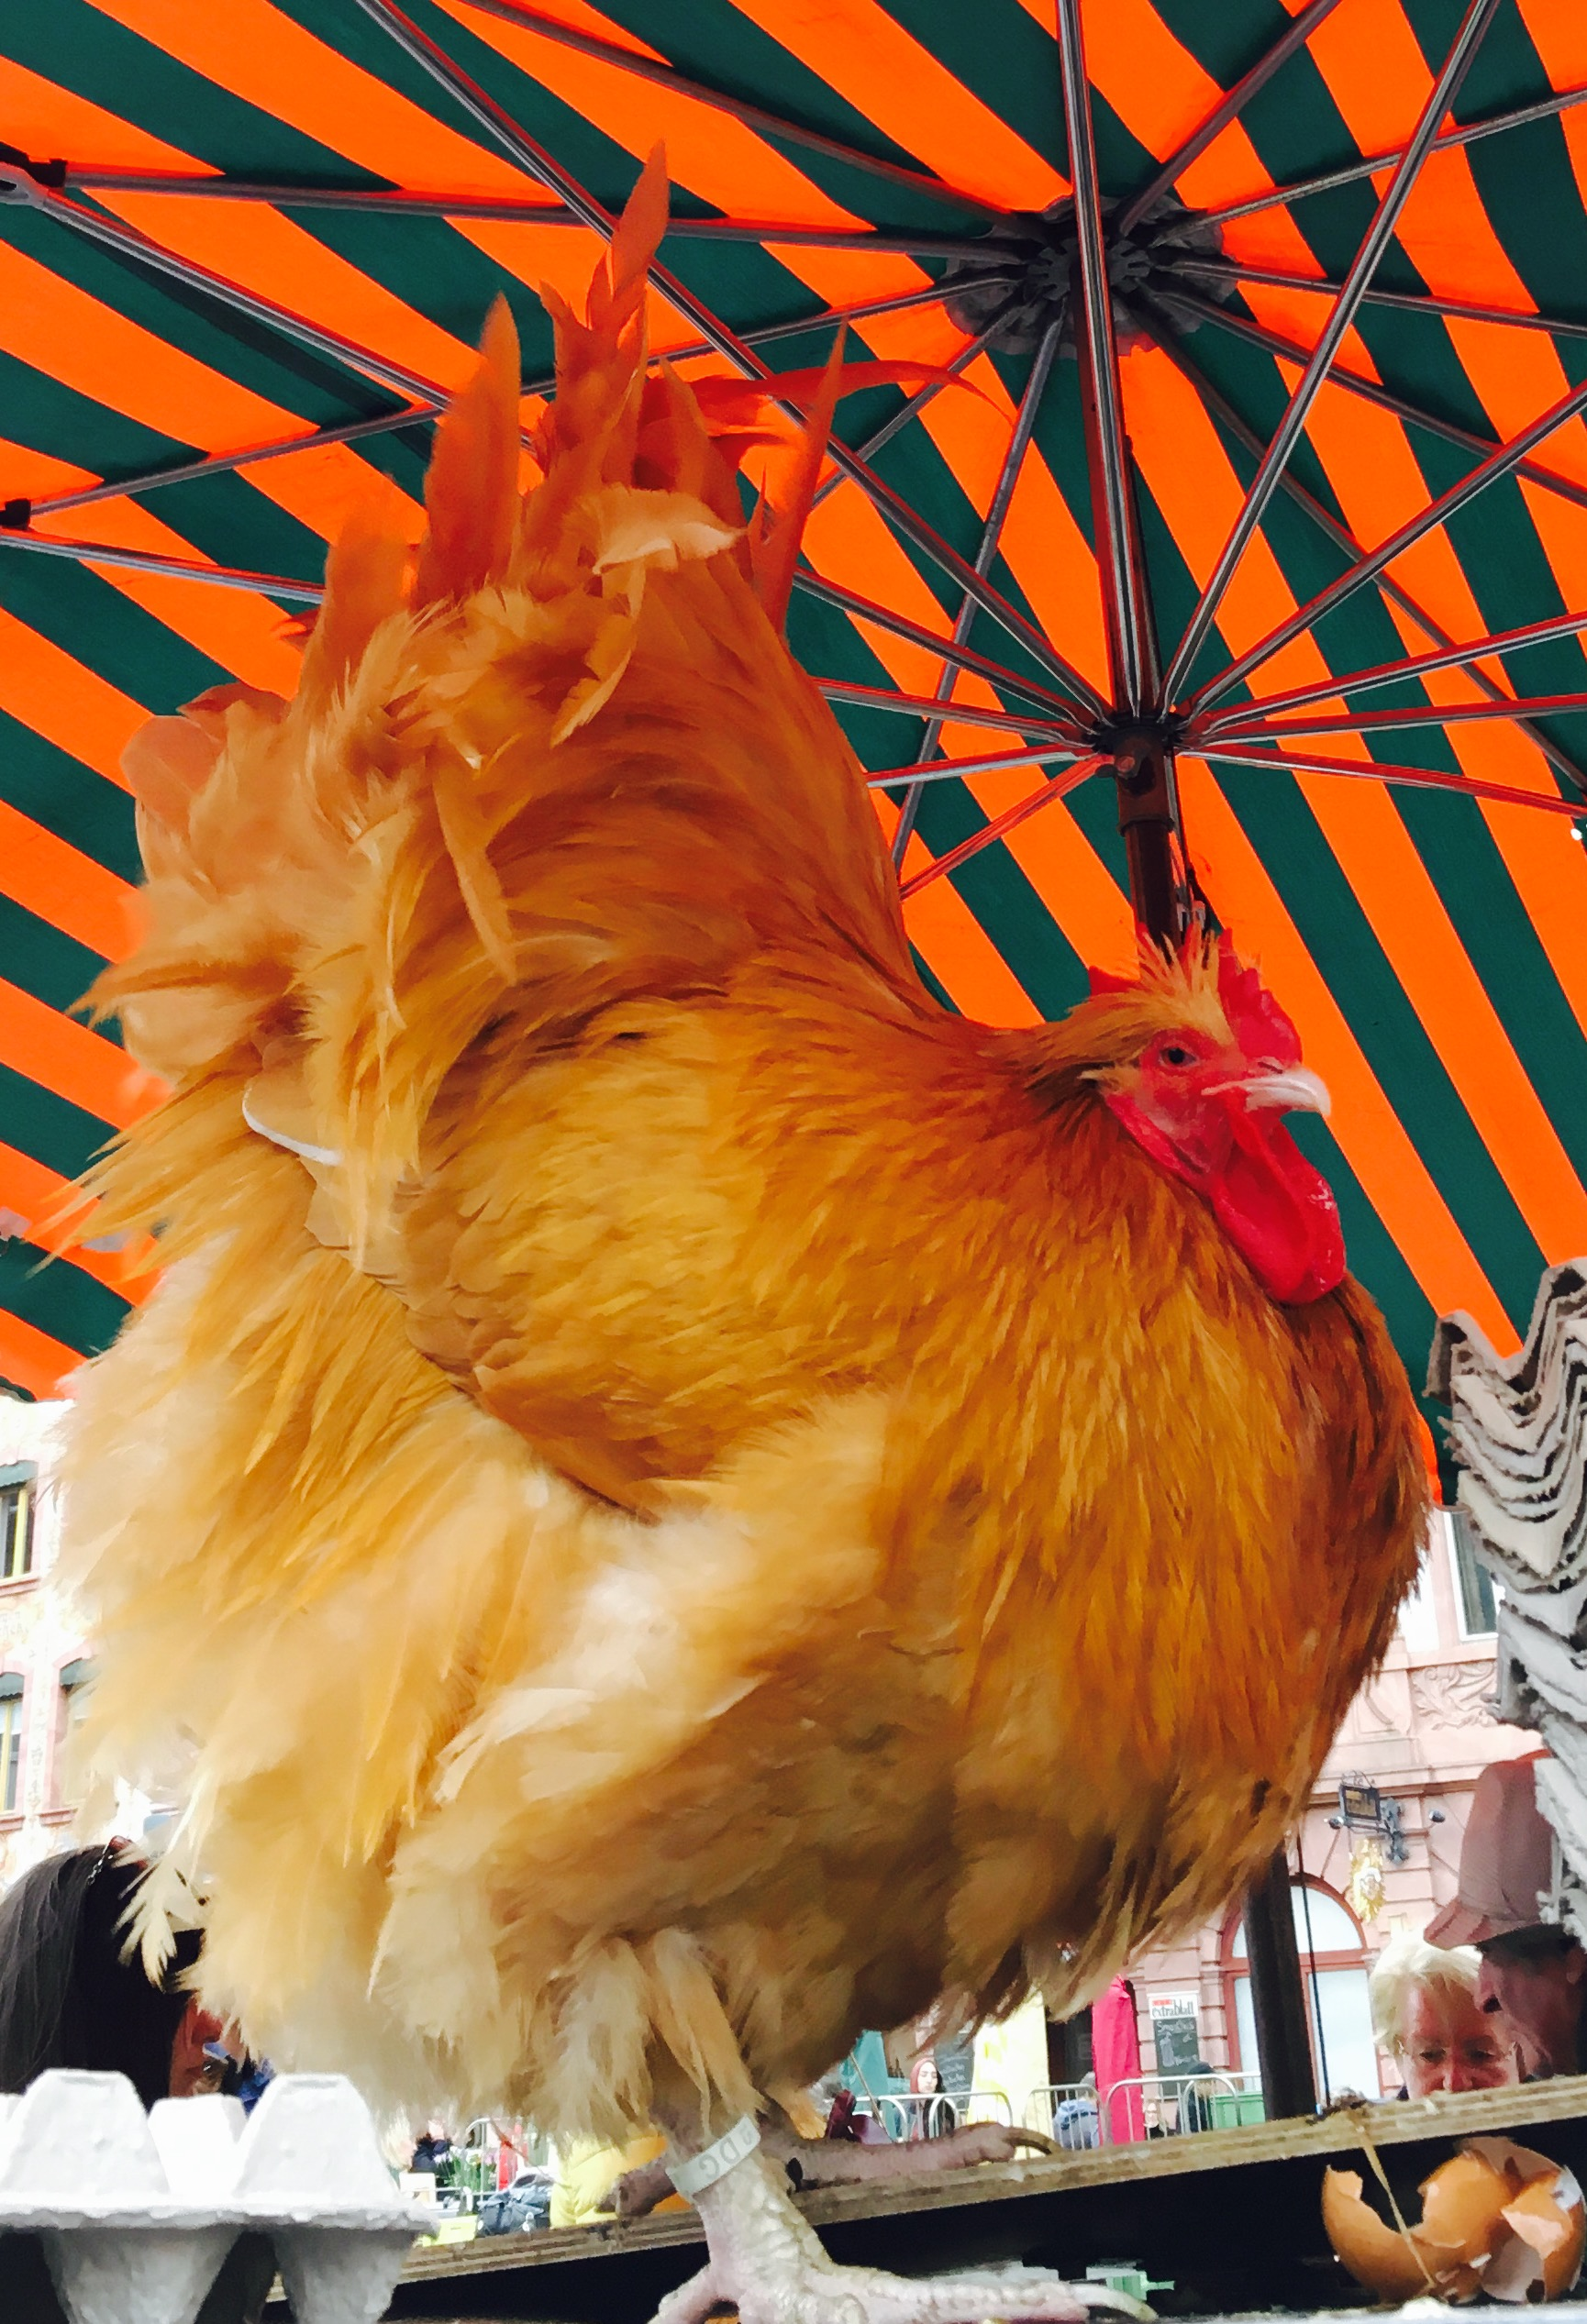 The Mainz Market Hen: Remembering My Days in the Pen